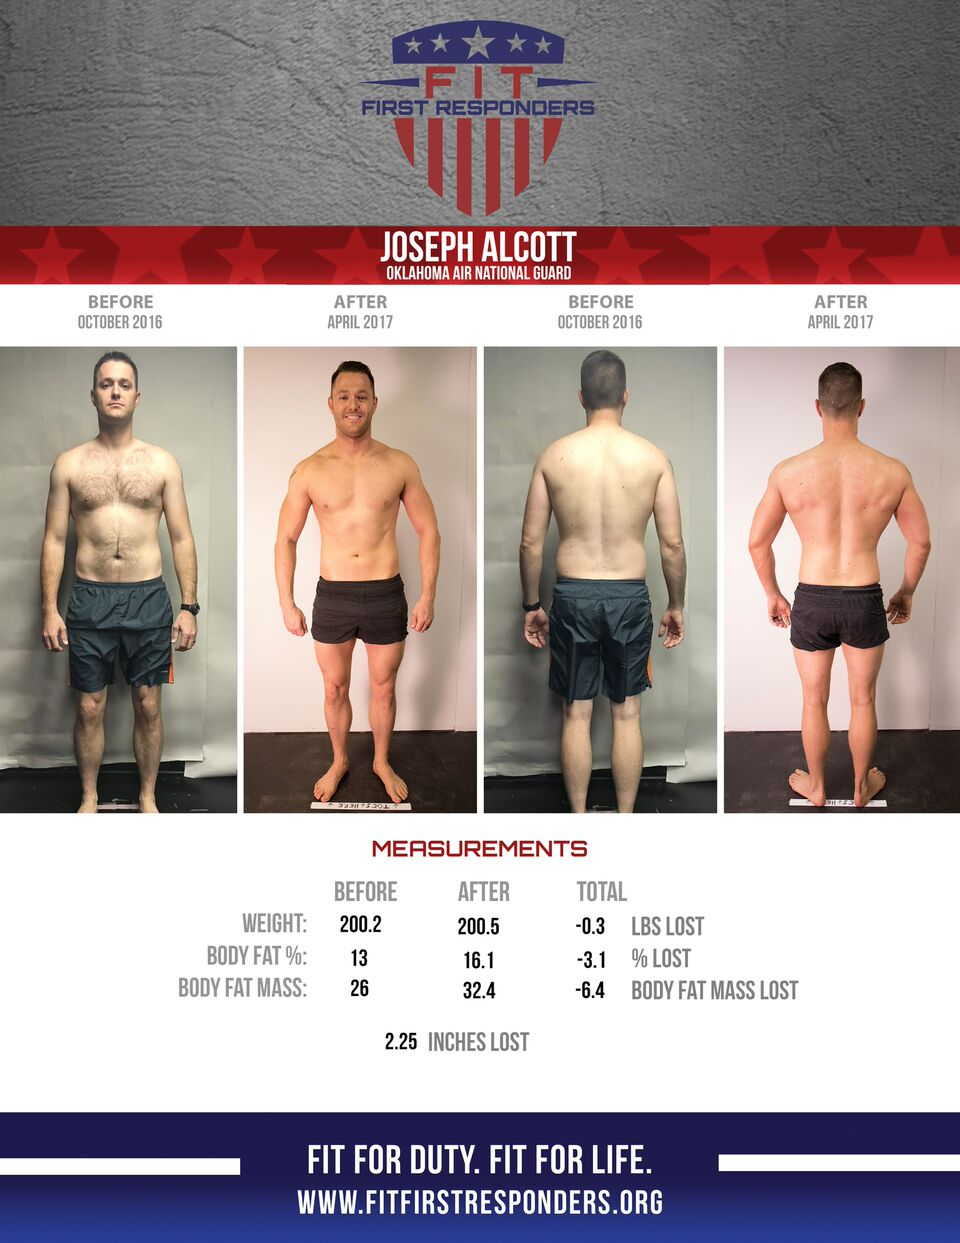 Joseph Alcott lost no weight but dropped body fat 10%